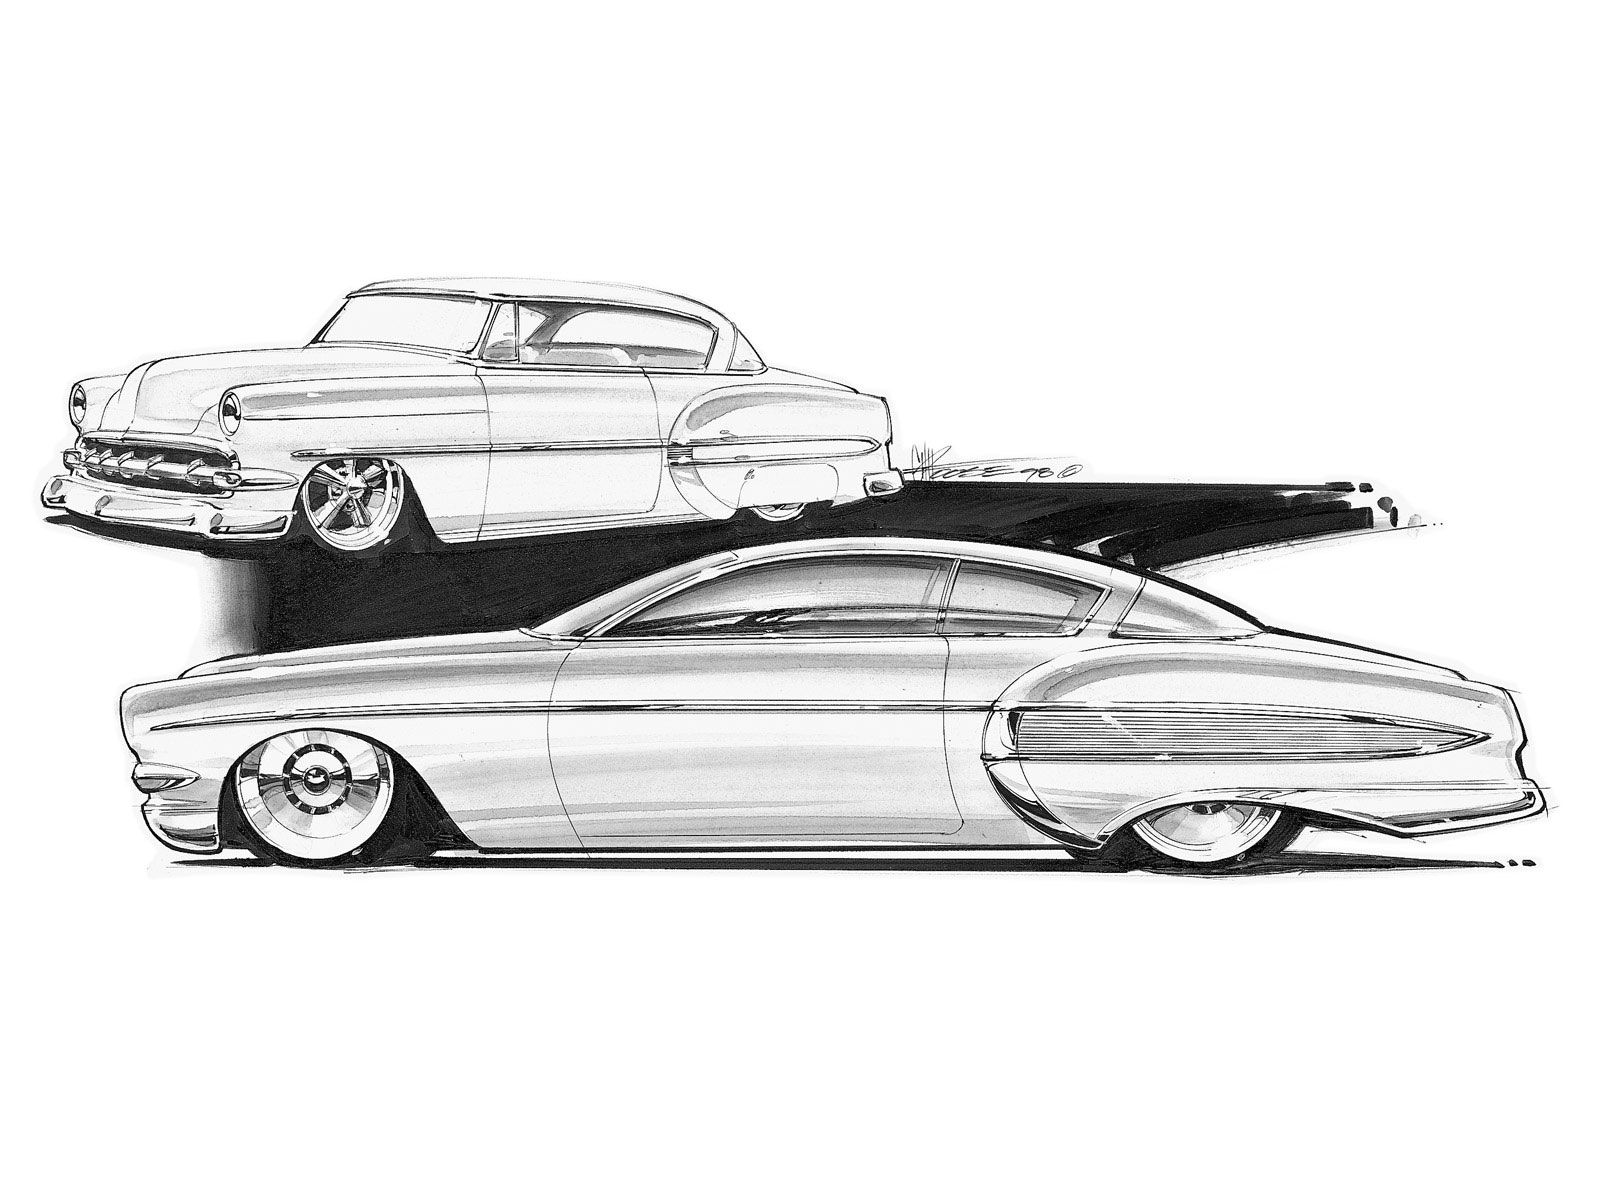 Check out some of the wild concept drawings for some Shoebox cars ...